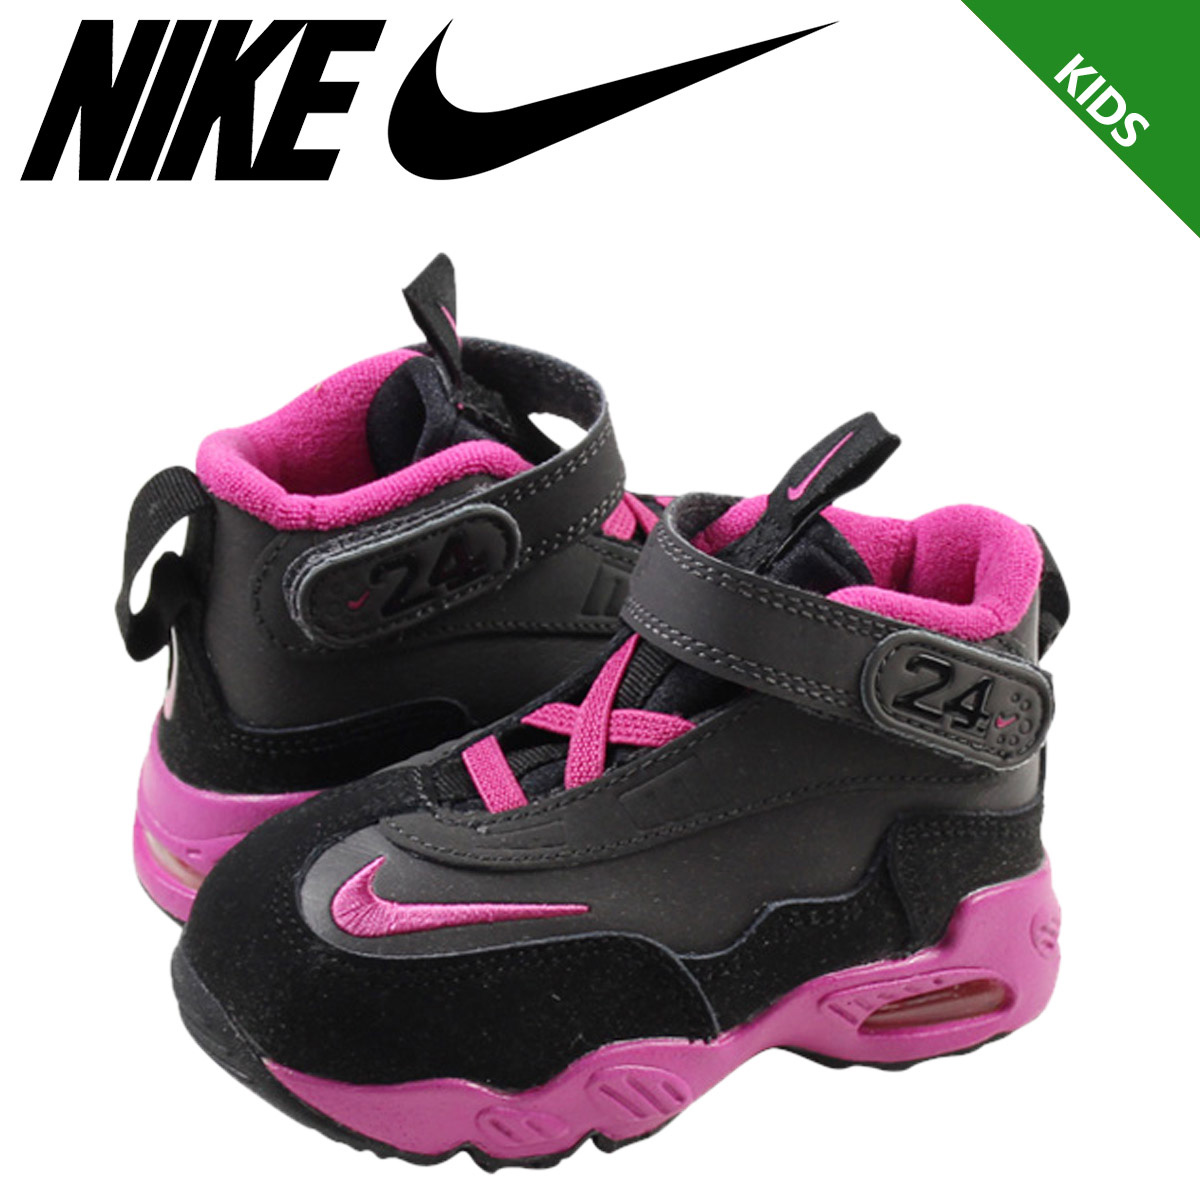 new product 9c30a 9497c  masterpiece models of NIKE are received one after another!  ・AIR GRIFFEY  MAX 1